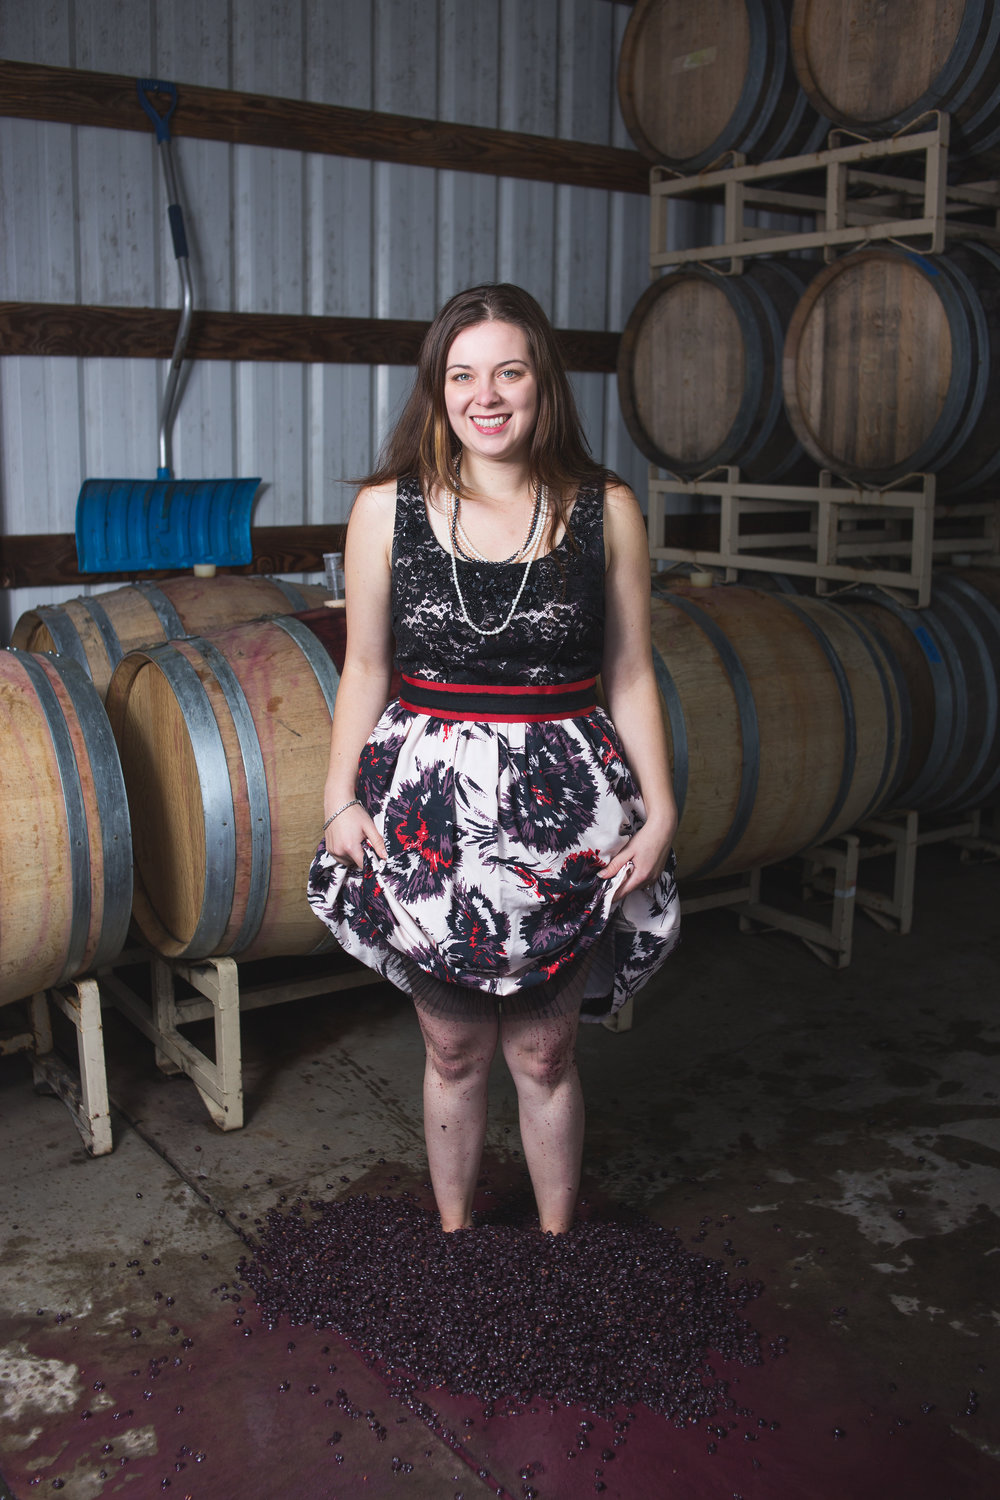 "Justina Harris -   Direct Sales Manager   Justina moved here from Idaho and deeply resents all of the potato and, ""You da ho!"" jokes. While in Idaho, she spent 4 years doing a little bit of everything in the industry, from managing the tasting room to running labs and working harvest. But her first love was Oregon Pinot Noir and she is thrilled to have finally made her way back to it. See her in our tasting room and you'll get why we hired her. An absolute firecracker, Justina is a great addition to our PVV team."